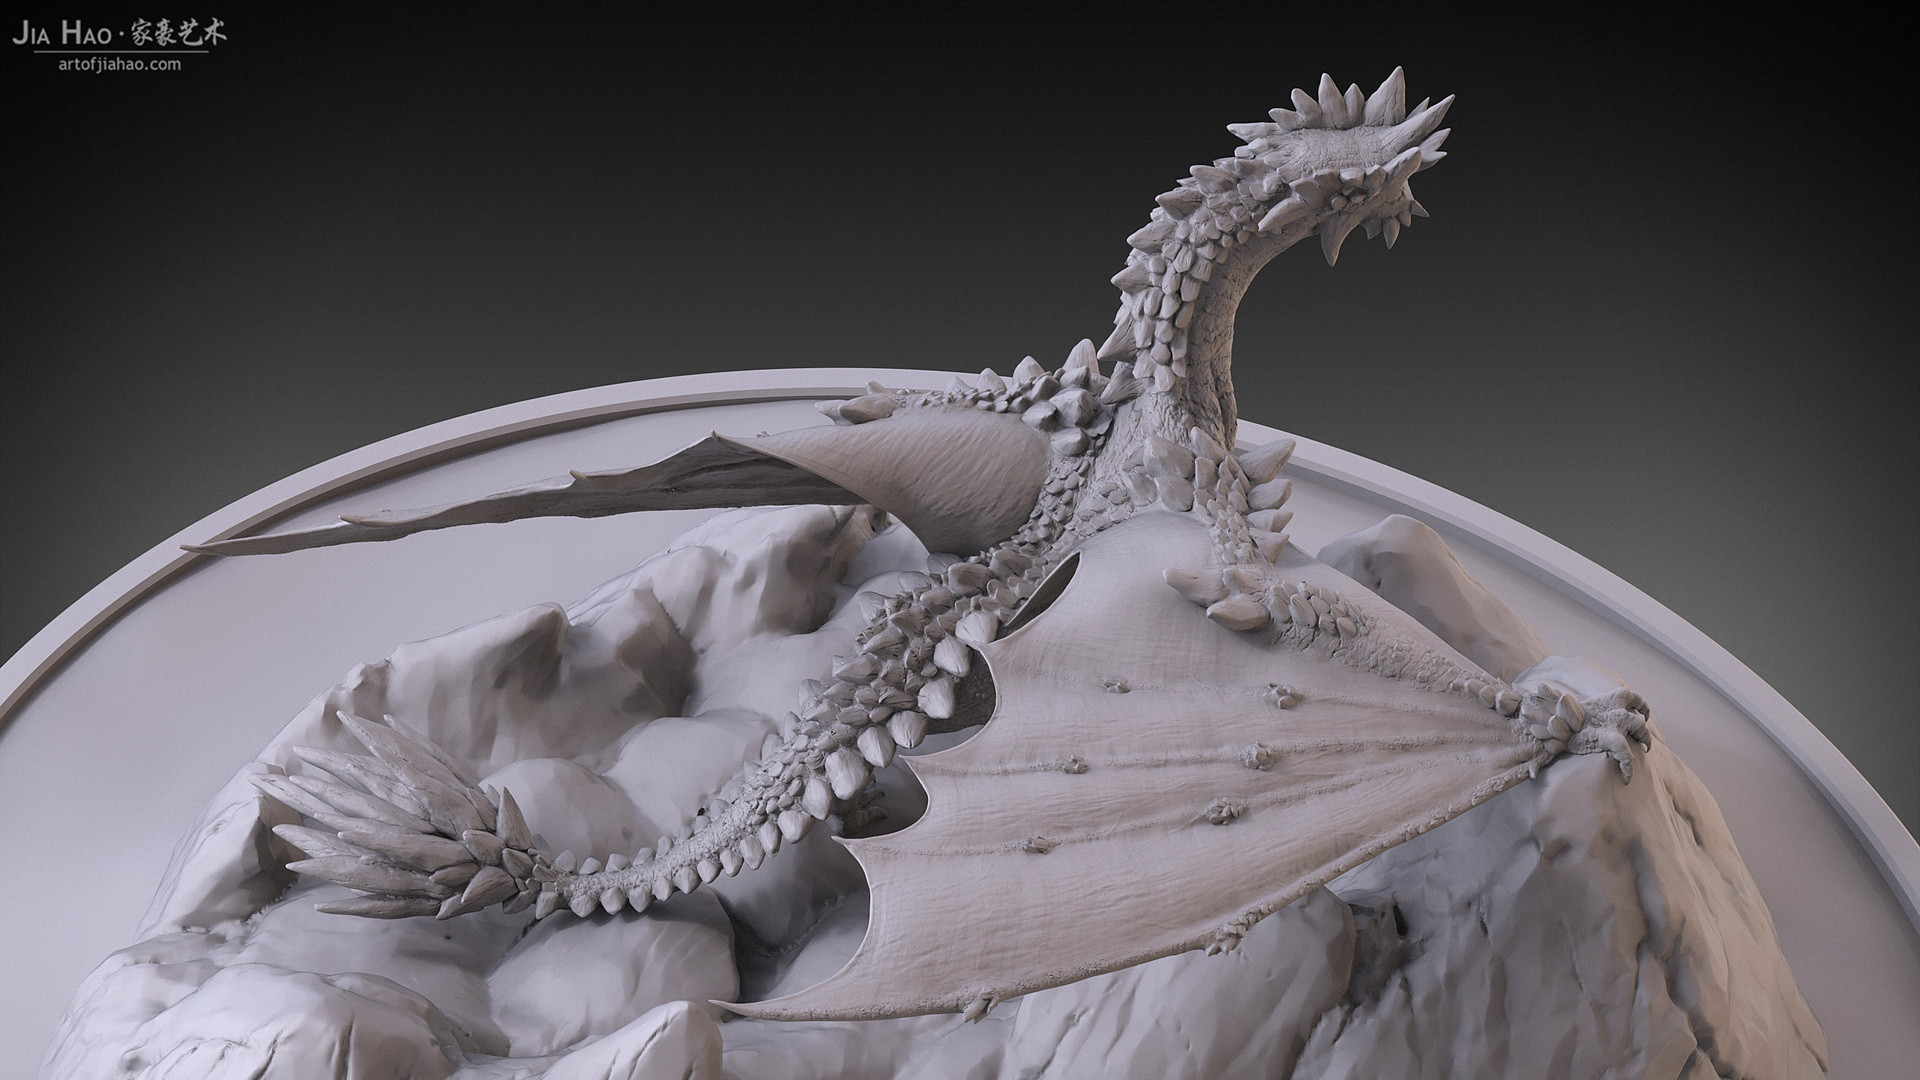 Jia hao 2017 rockdragon digitalsculpting 11